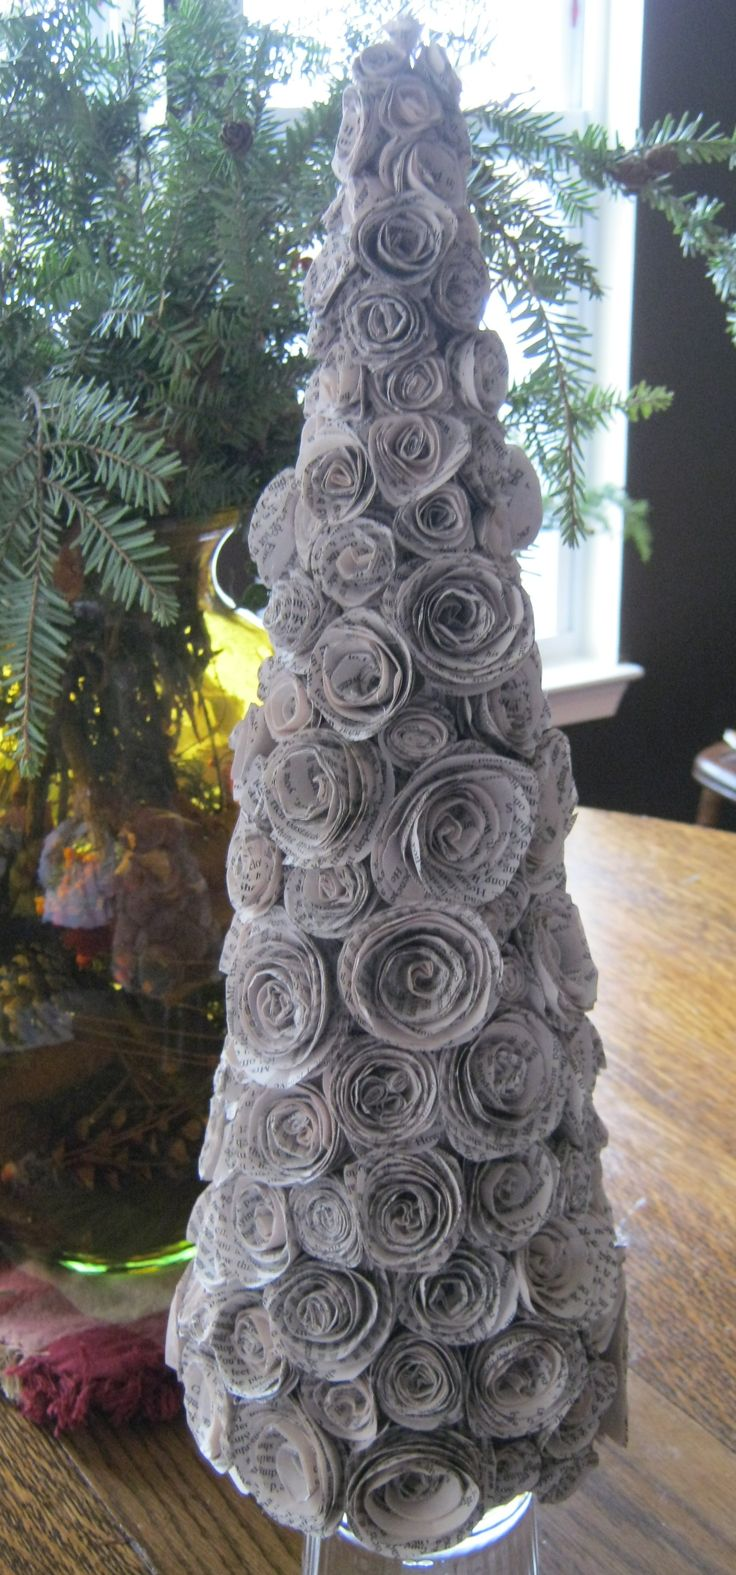 17 best ideas about recycled books on pinterest diy wall Christmas tree ideas using recycled materials